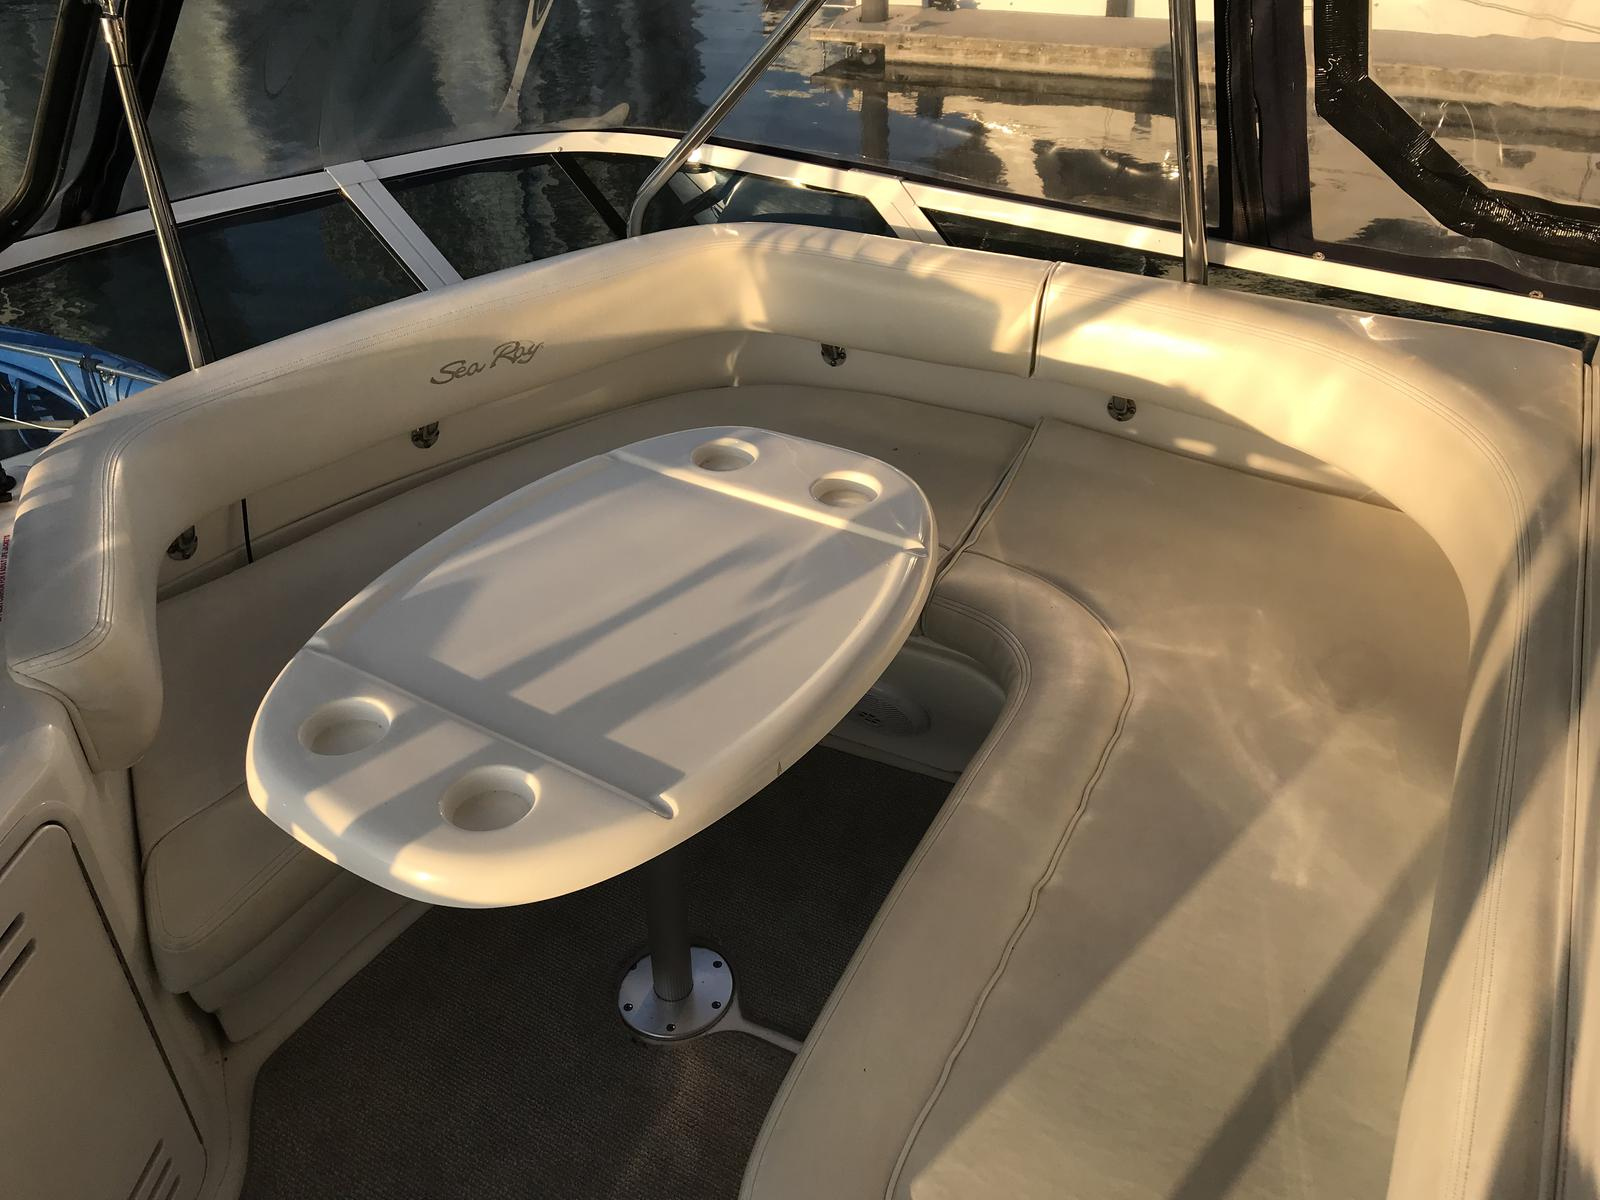 2004 Sea Ray boat for sale, model of the boat is 48 Sedan Bridge & Image # 4 of 12